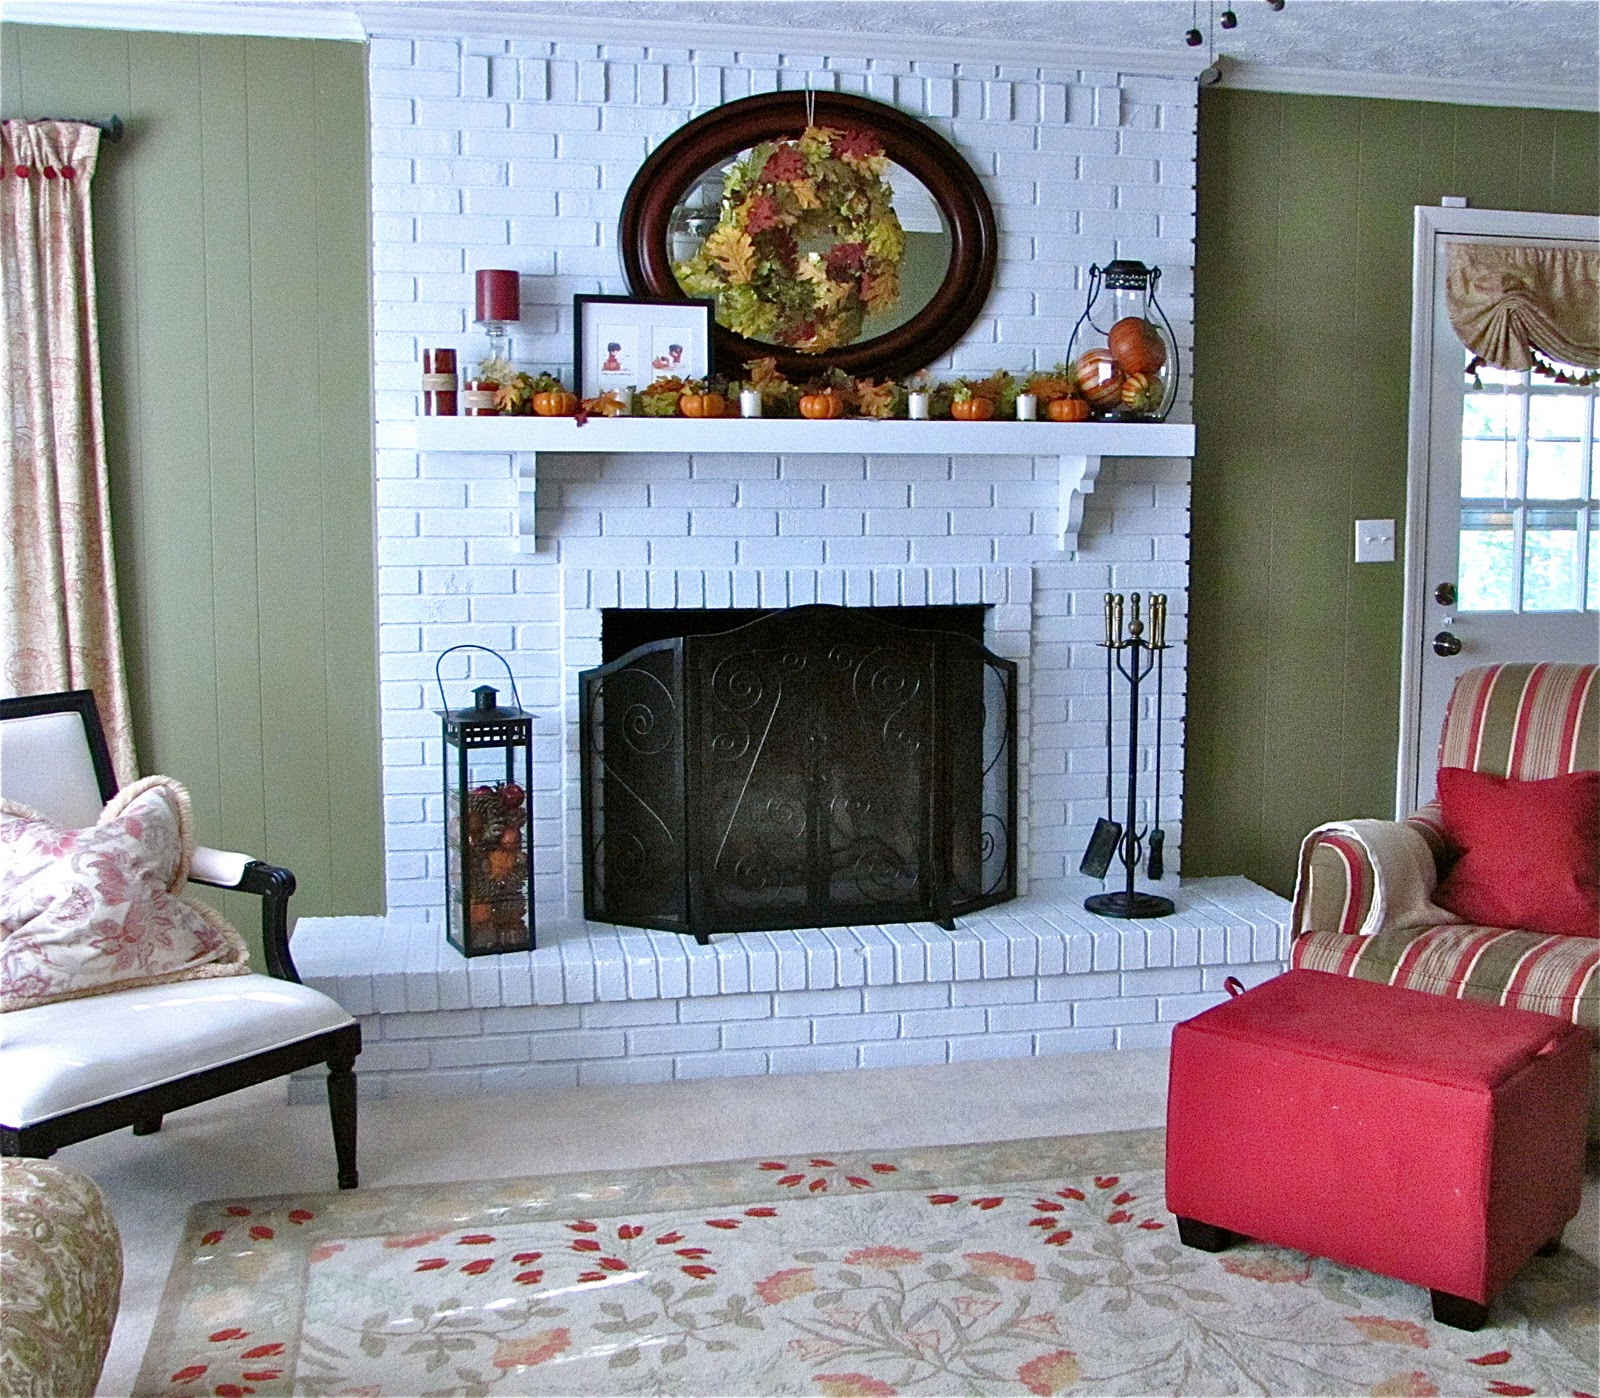 Brick fireplace makeover pictures fireplace design ideas Brick fireplace wall decorating ideas